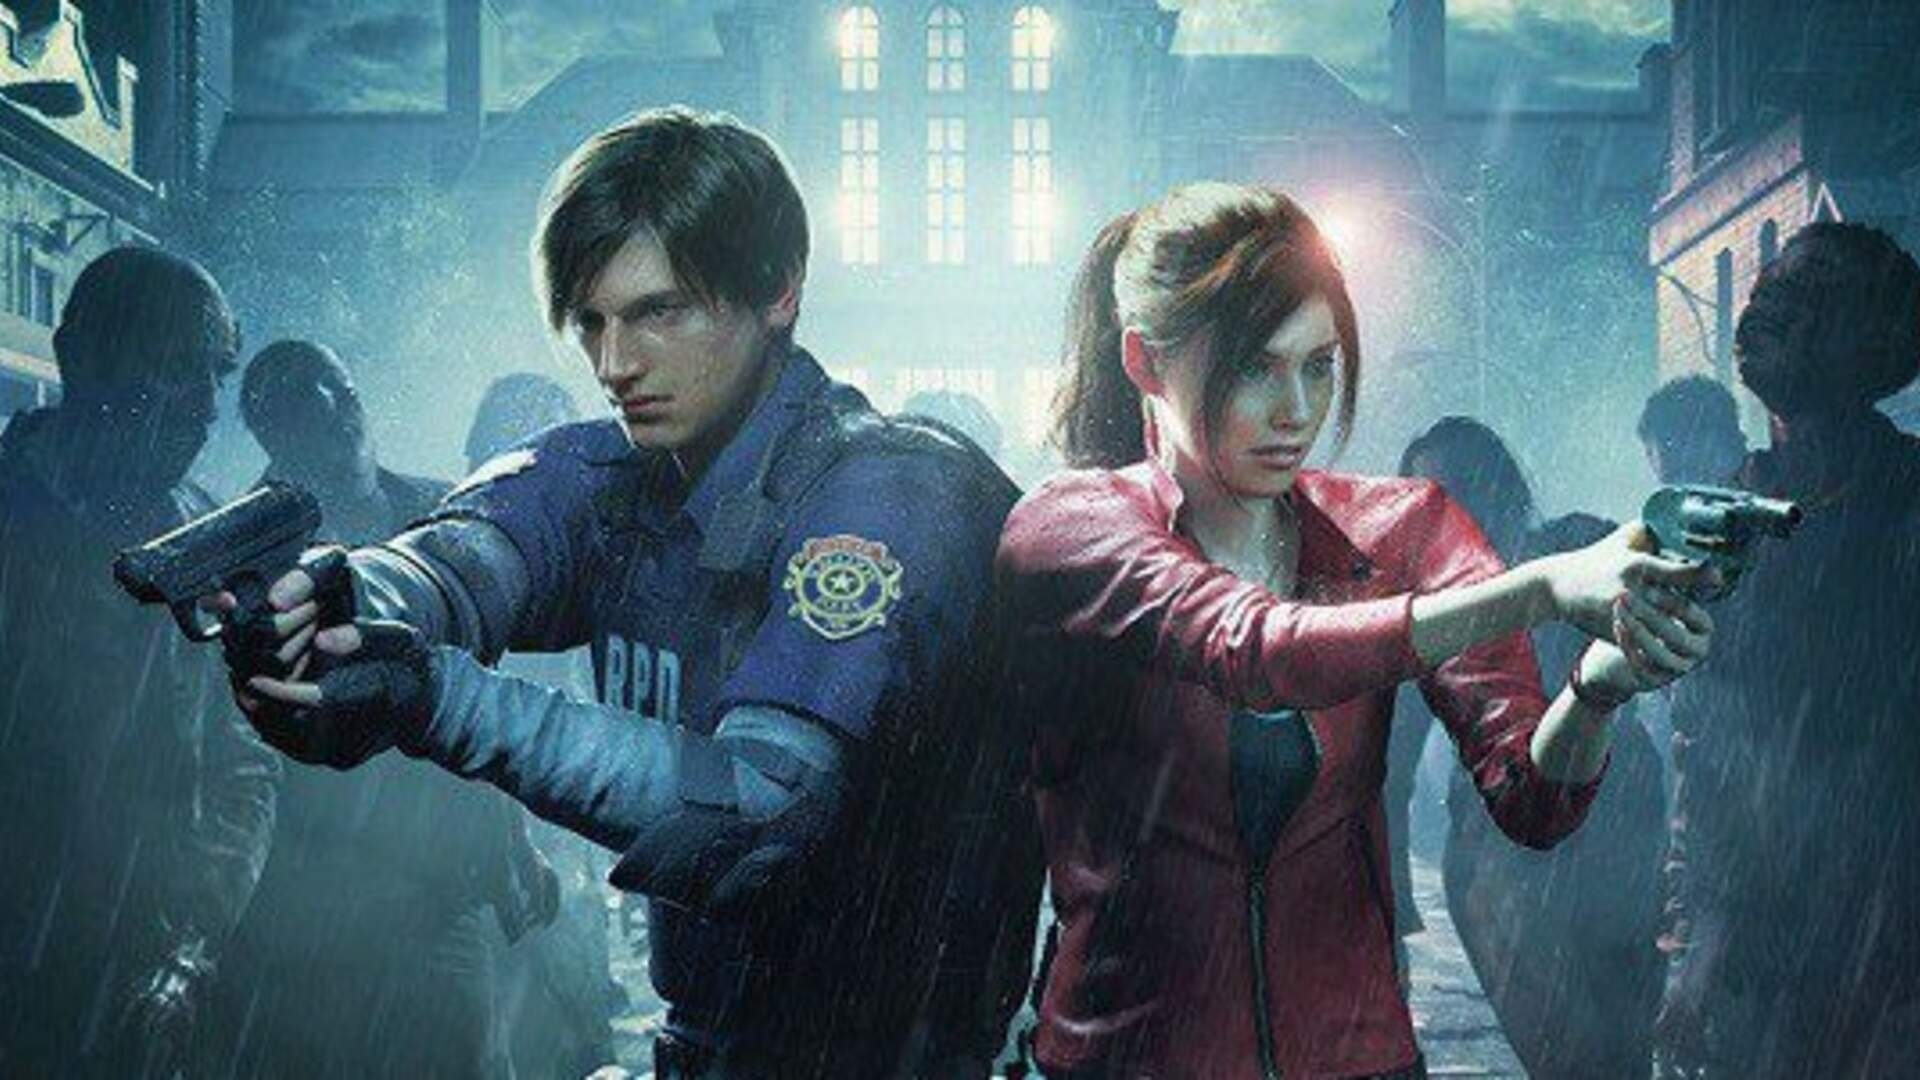 Resident Evil 2 Clock Tower Walkthrough - How to Solve the Clock Tower Puzzle in Resident Evil 2